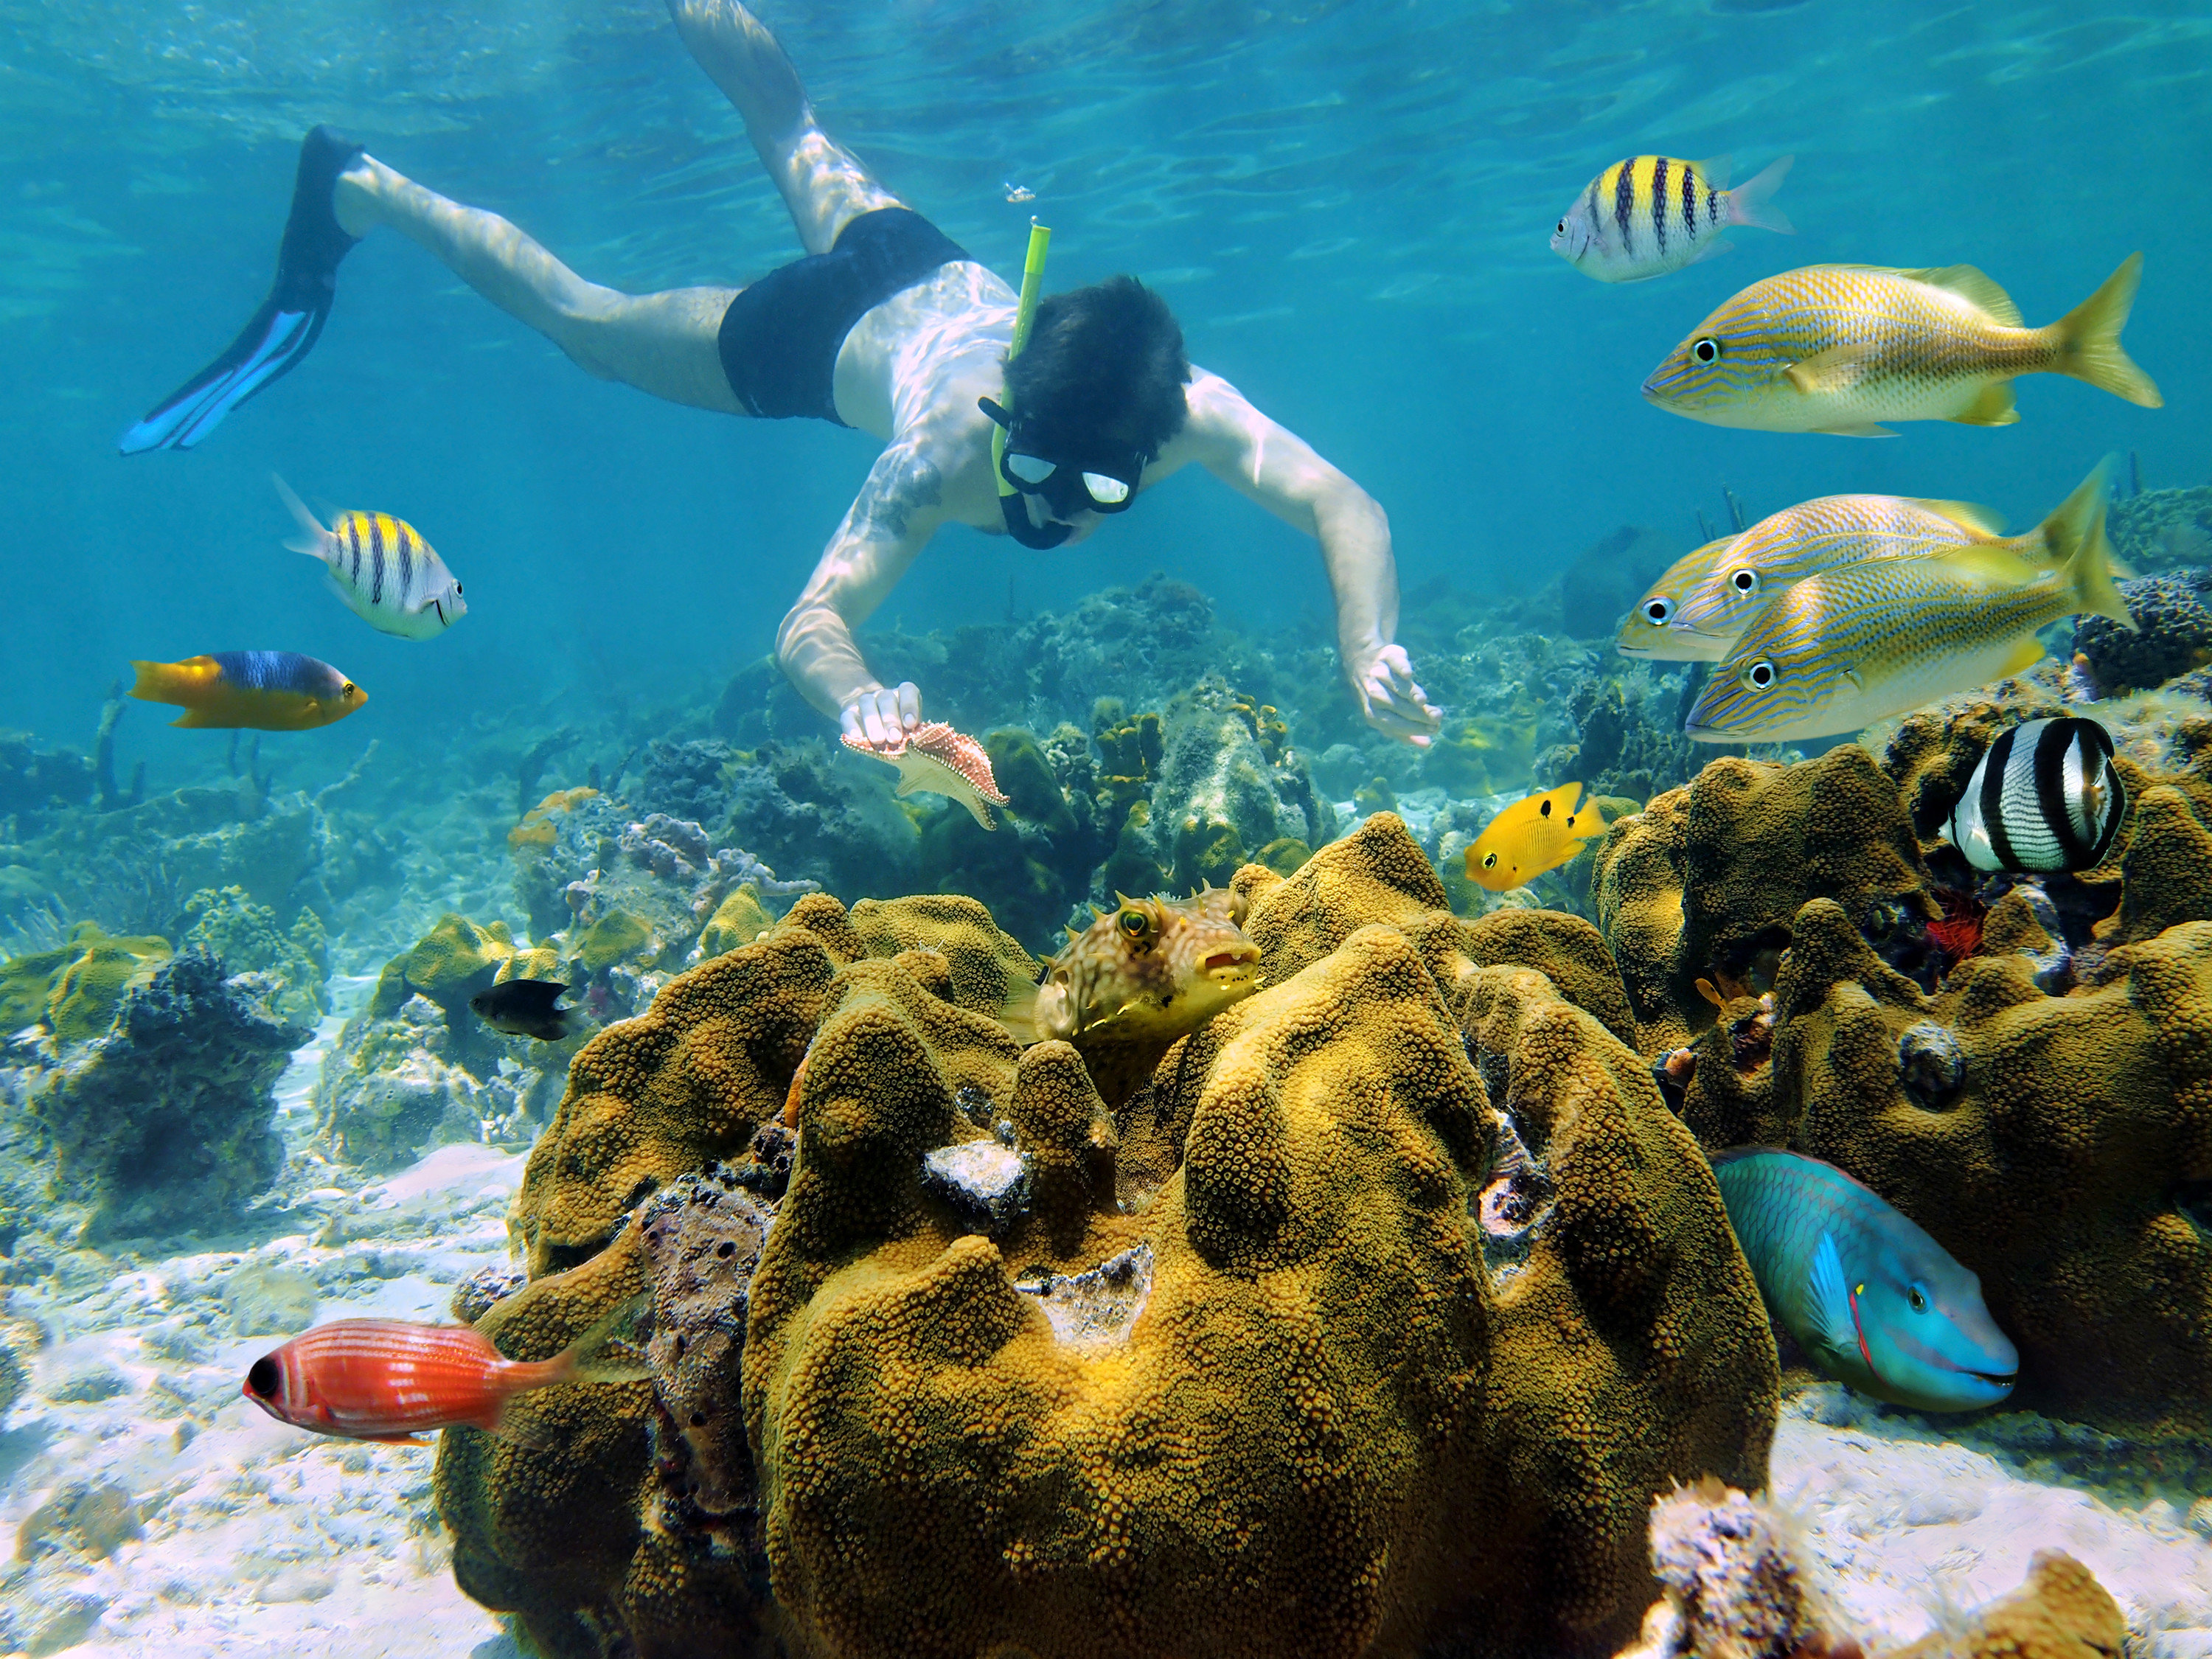 Mexico Trip Ideas Weekend Getaways coral reef water underwater ecosystem marine biology coral reef fish Sea reef organism coral swimming Ocean aquanaut divemaster coastal and oceanic landforms snorkeling marine invertebrates fish stony coral shoal